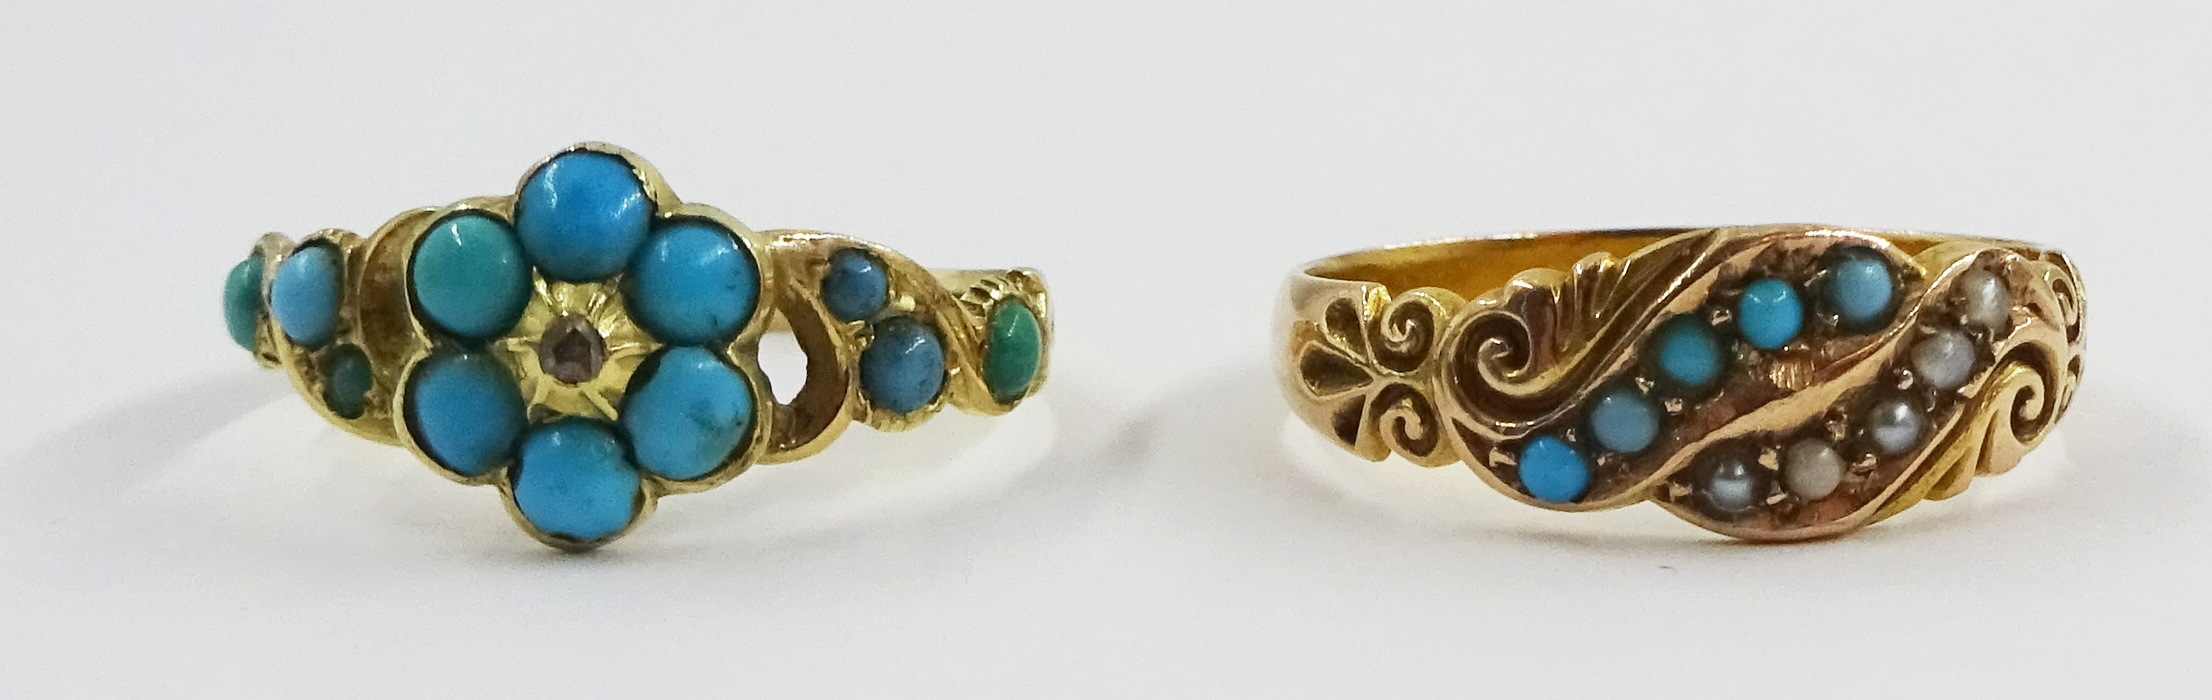 Victorian turquoise and diamond ring stamped 18ct and an Edwardian 15ct gold turquoise and spilt see - Image 5 of 5